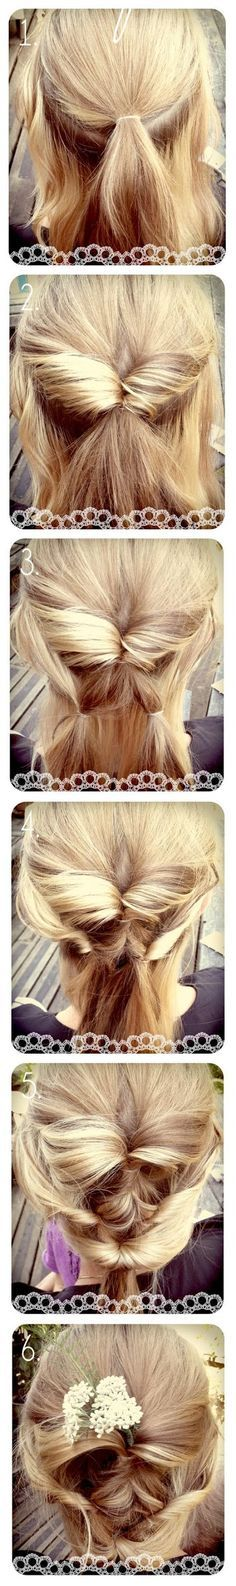 Easy Low Updo